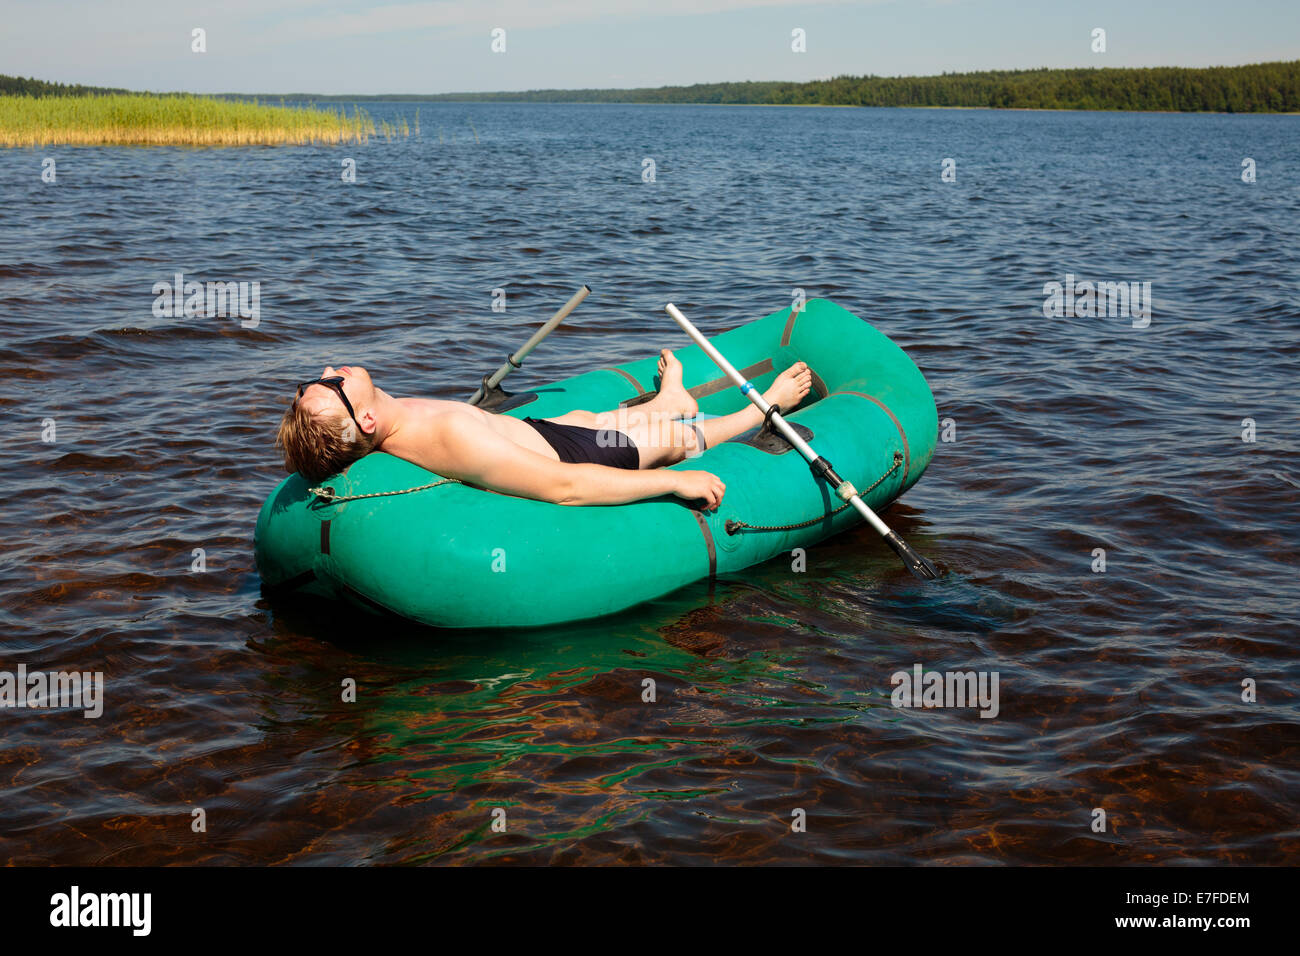 Relaxation immagini relaxation fotos stock alamy - Piscine di gomma ...